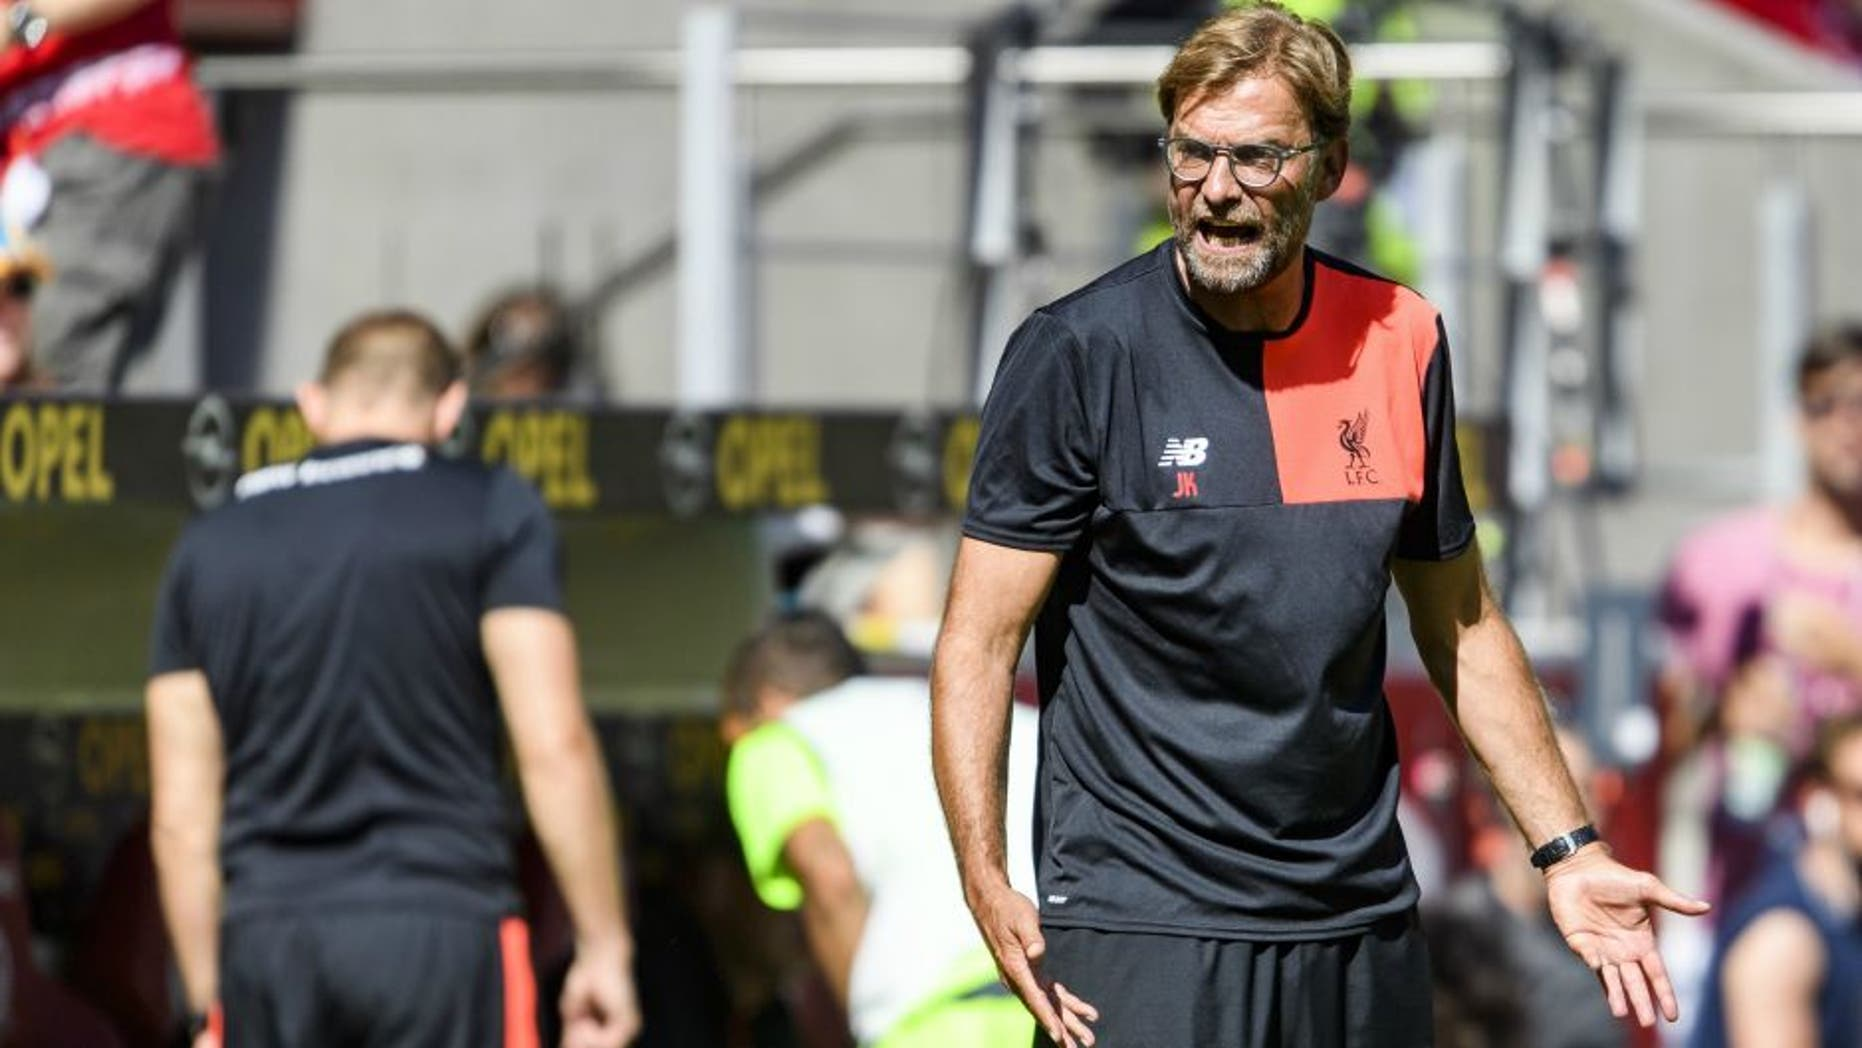 MAINZ, GERMANY - AUGUST 07: Head coach Juergen Klopp of Liverpool during the friendly match between 1. FSV Mainz 05 and Liverpool FC at Opel Arena on August 7, 2016 in Mainz, Germany. (Photo by Alexander Scheuber/Bongarts/Getty Images)